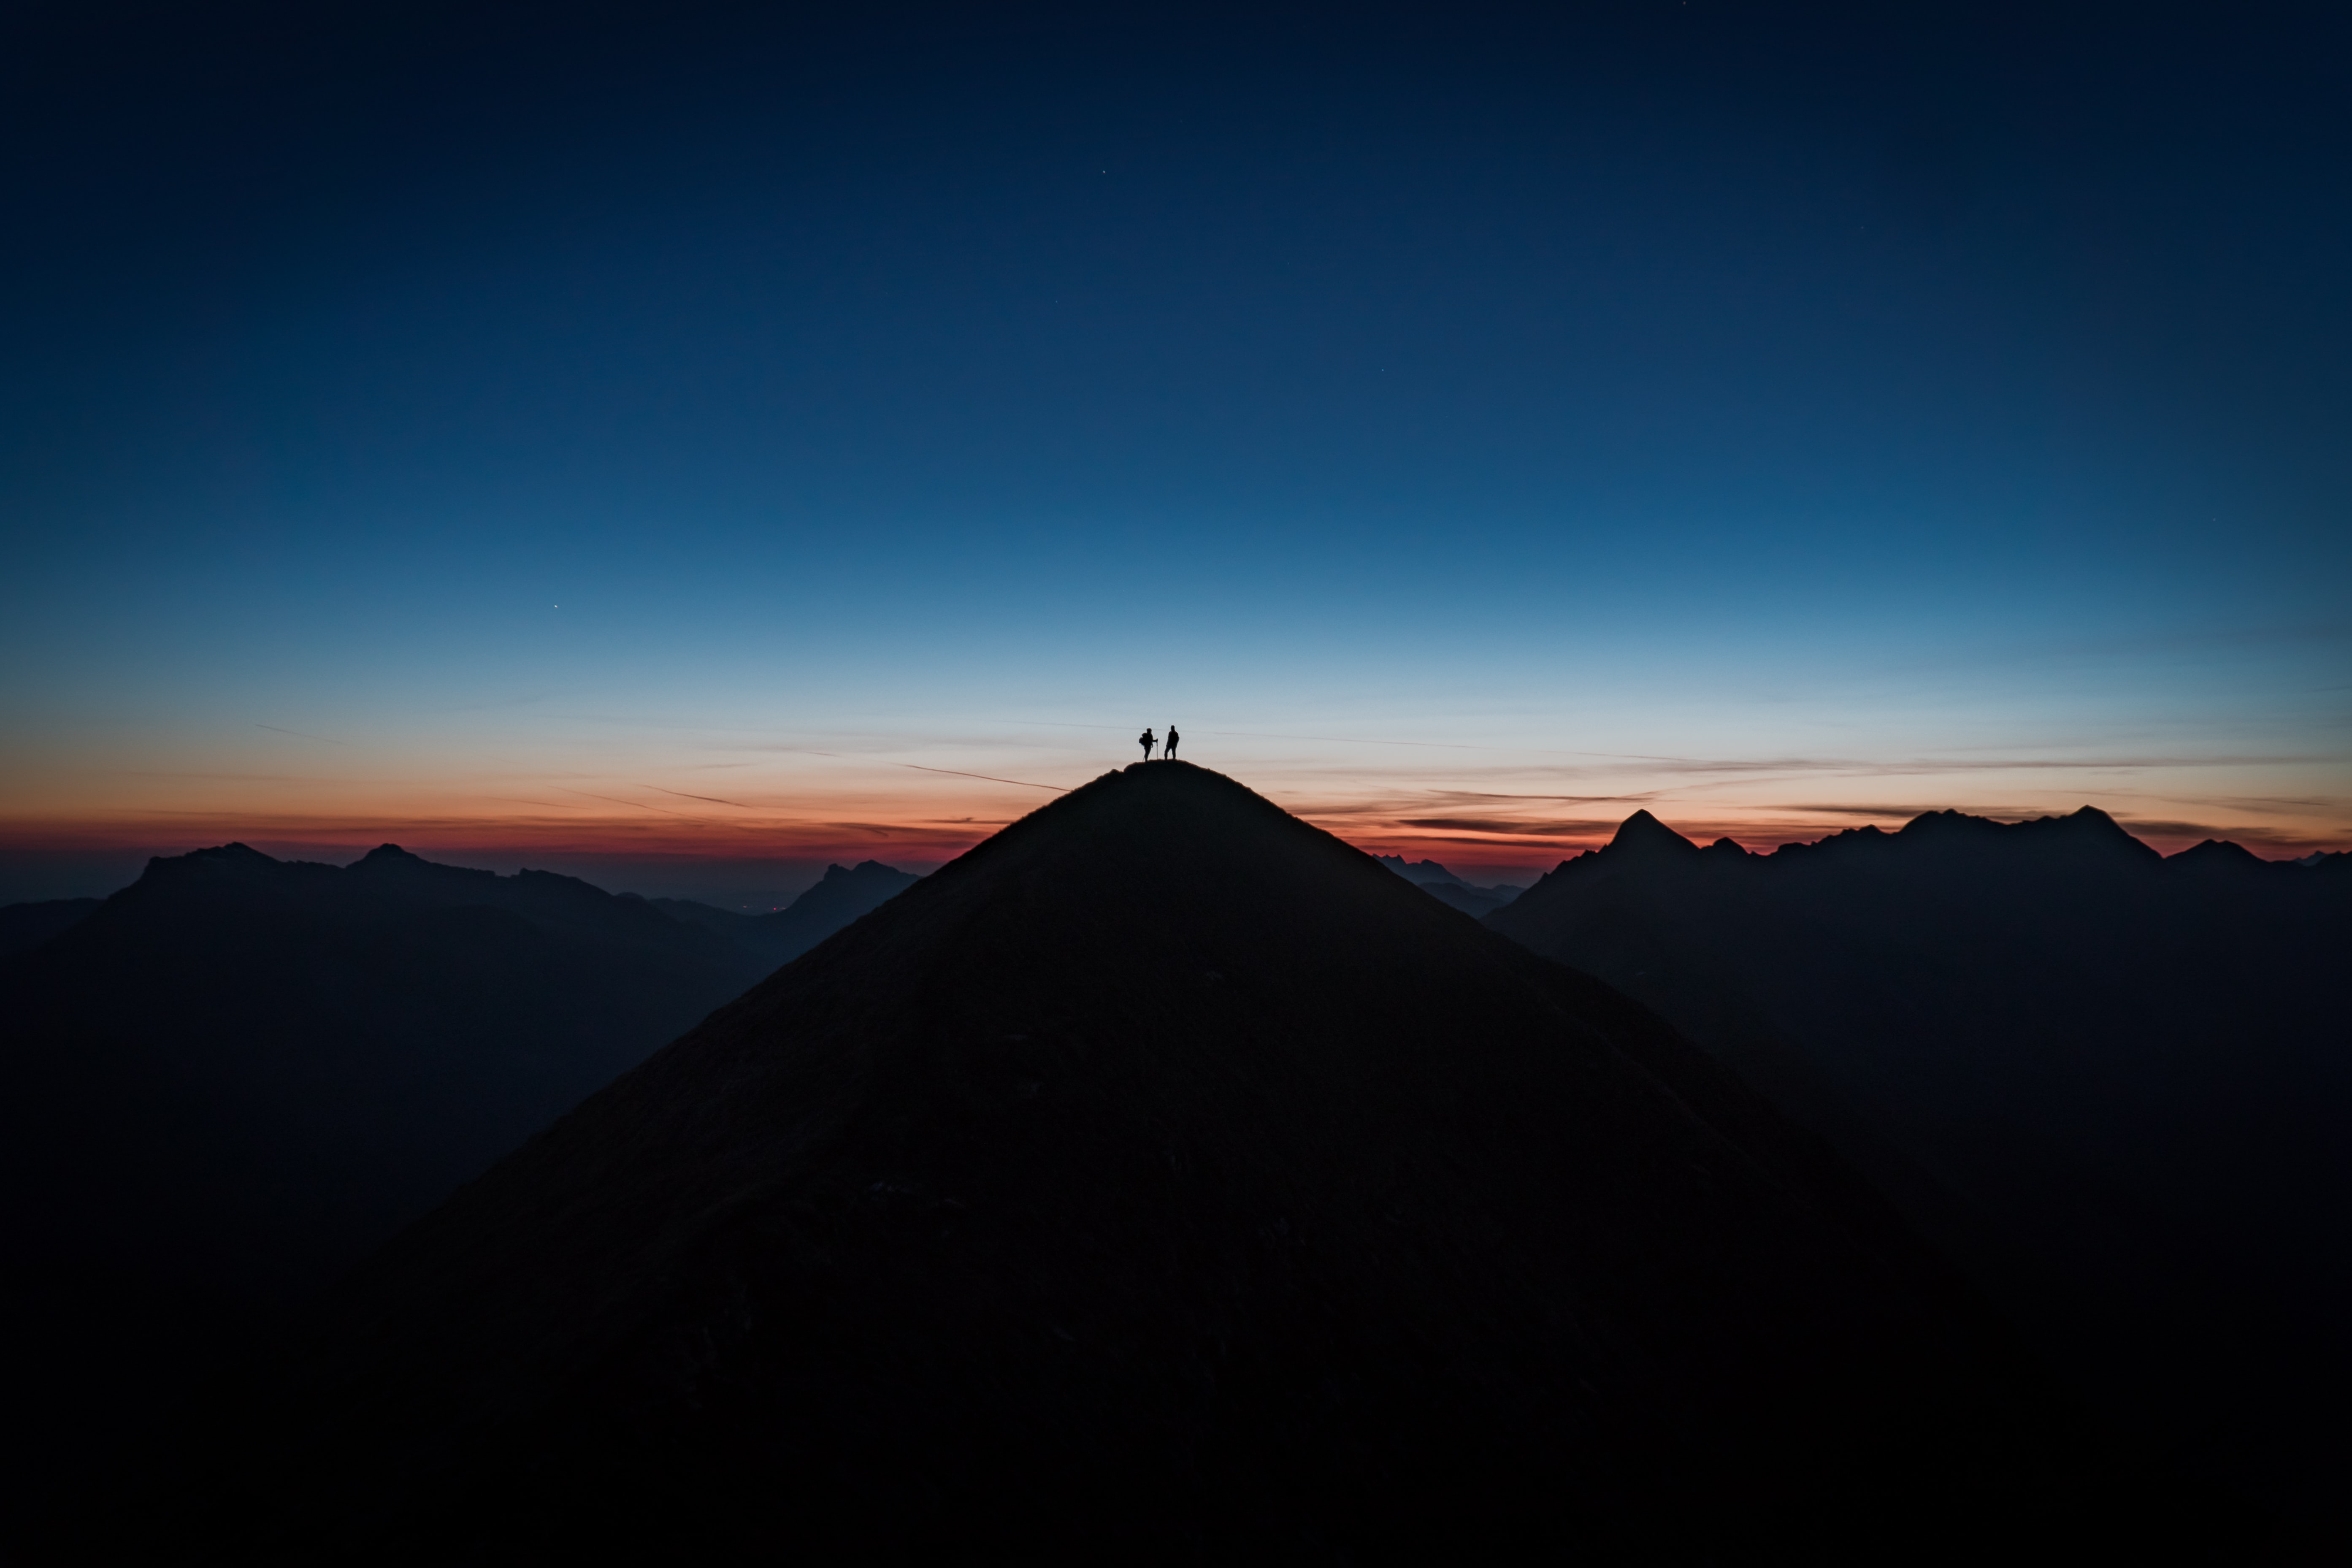 153889 Screensavers and Wallpapers Dahl for phone. Download Sunset, Silhouette, Miscellanea, Miscellaneous, Dahl, Distance, Hill pictures for free